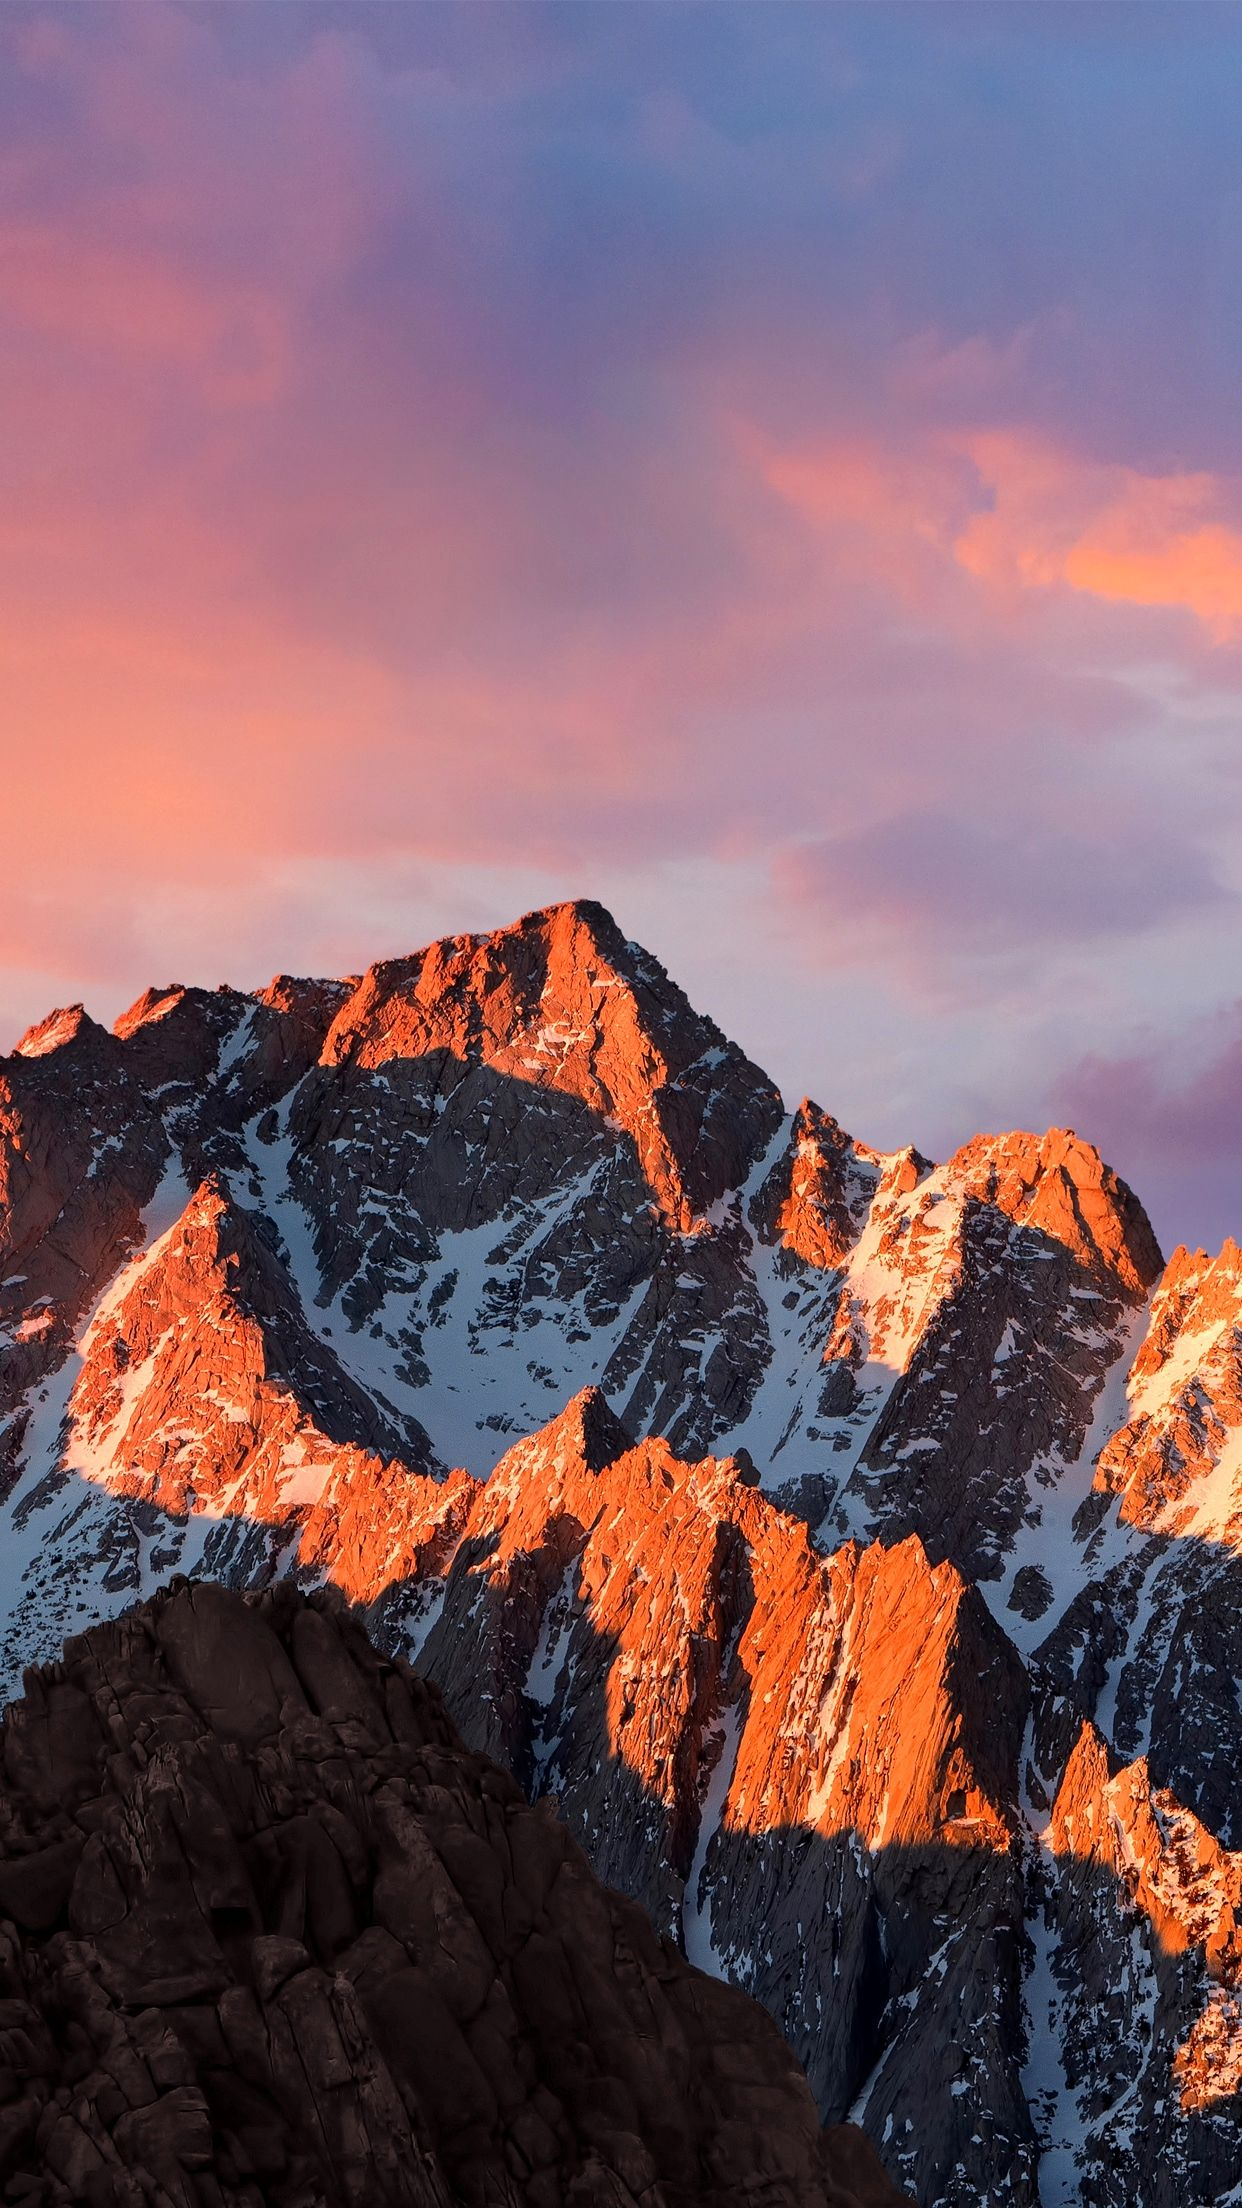 Wallpaper Mac Os High Sierra 4k Gallery